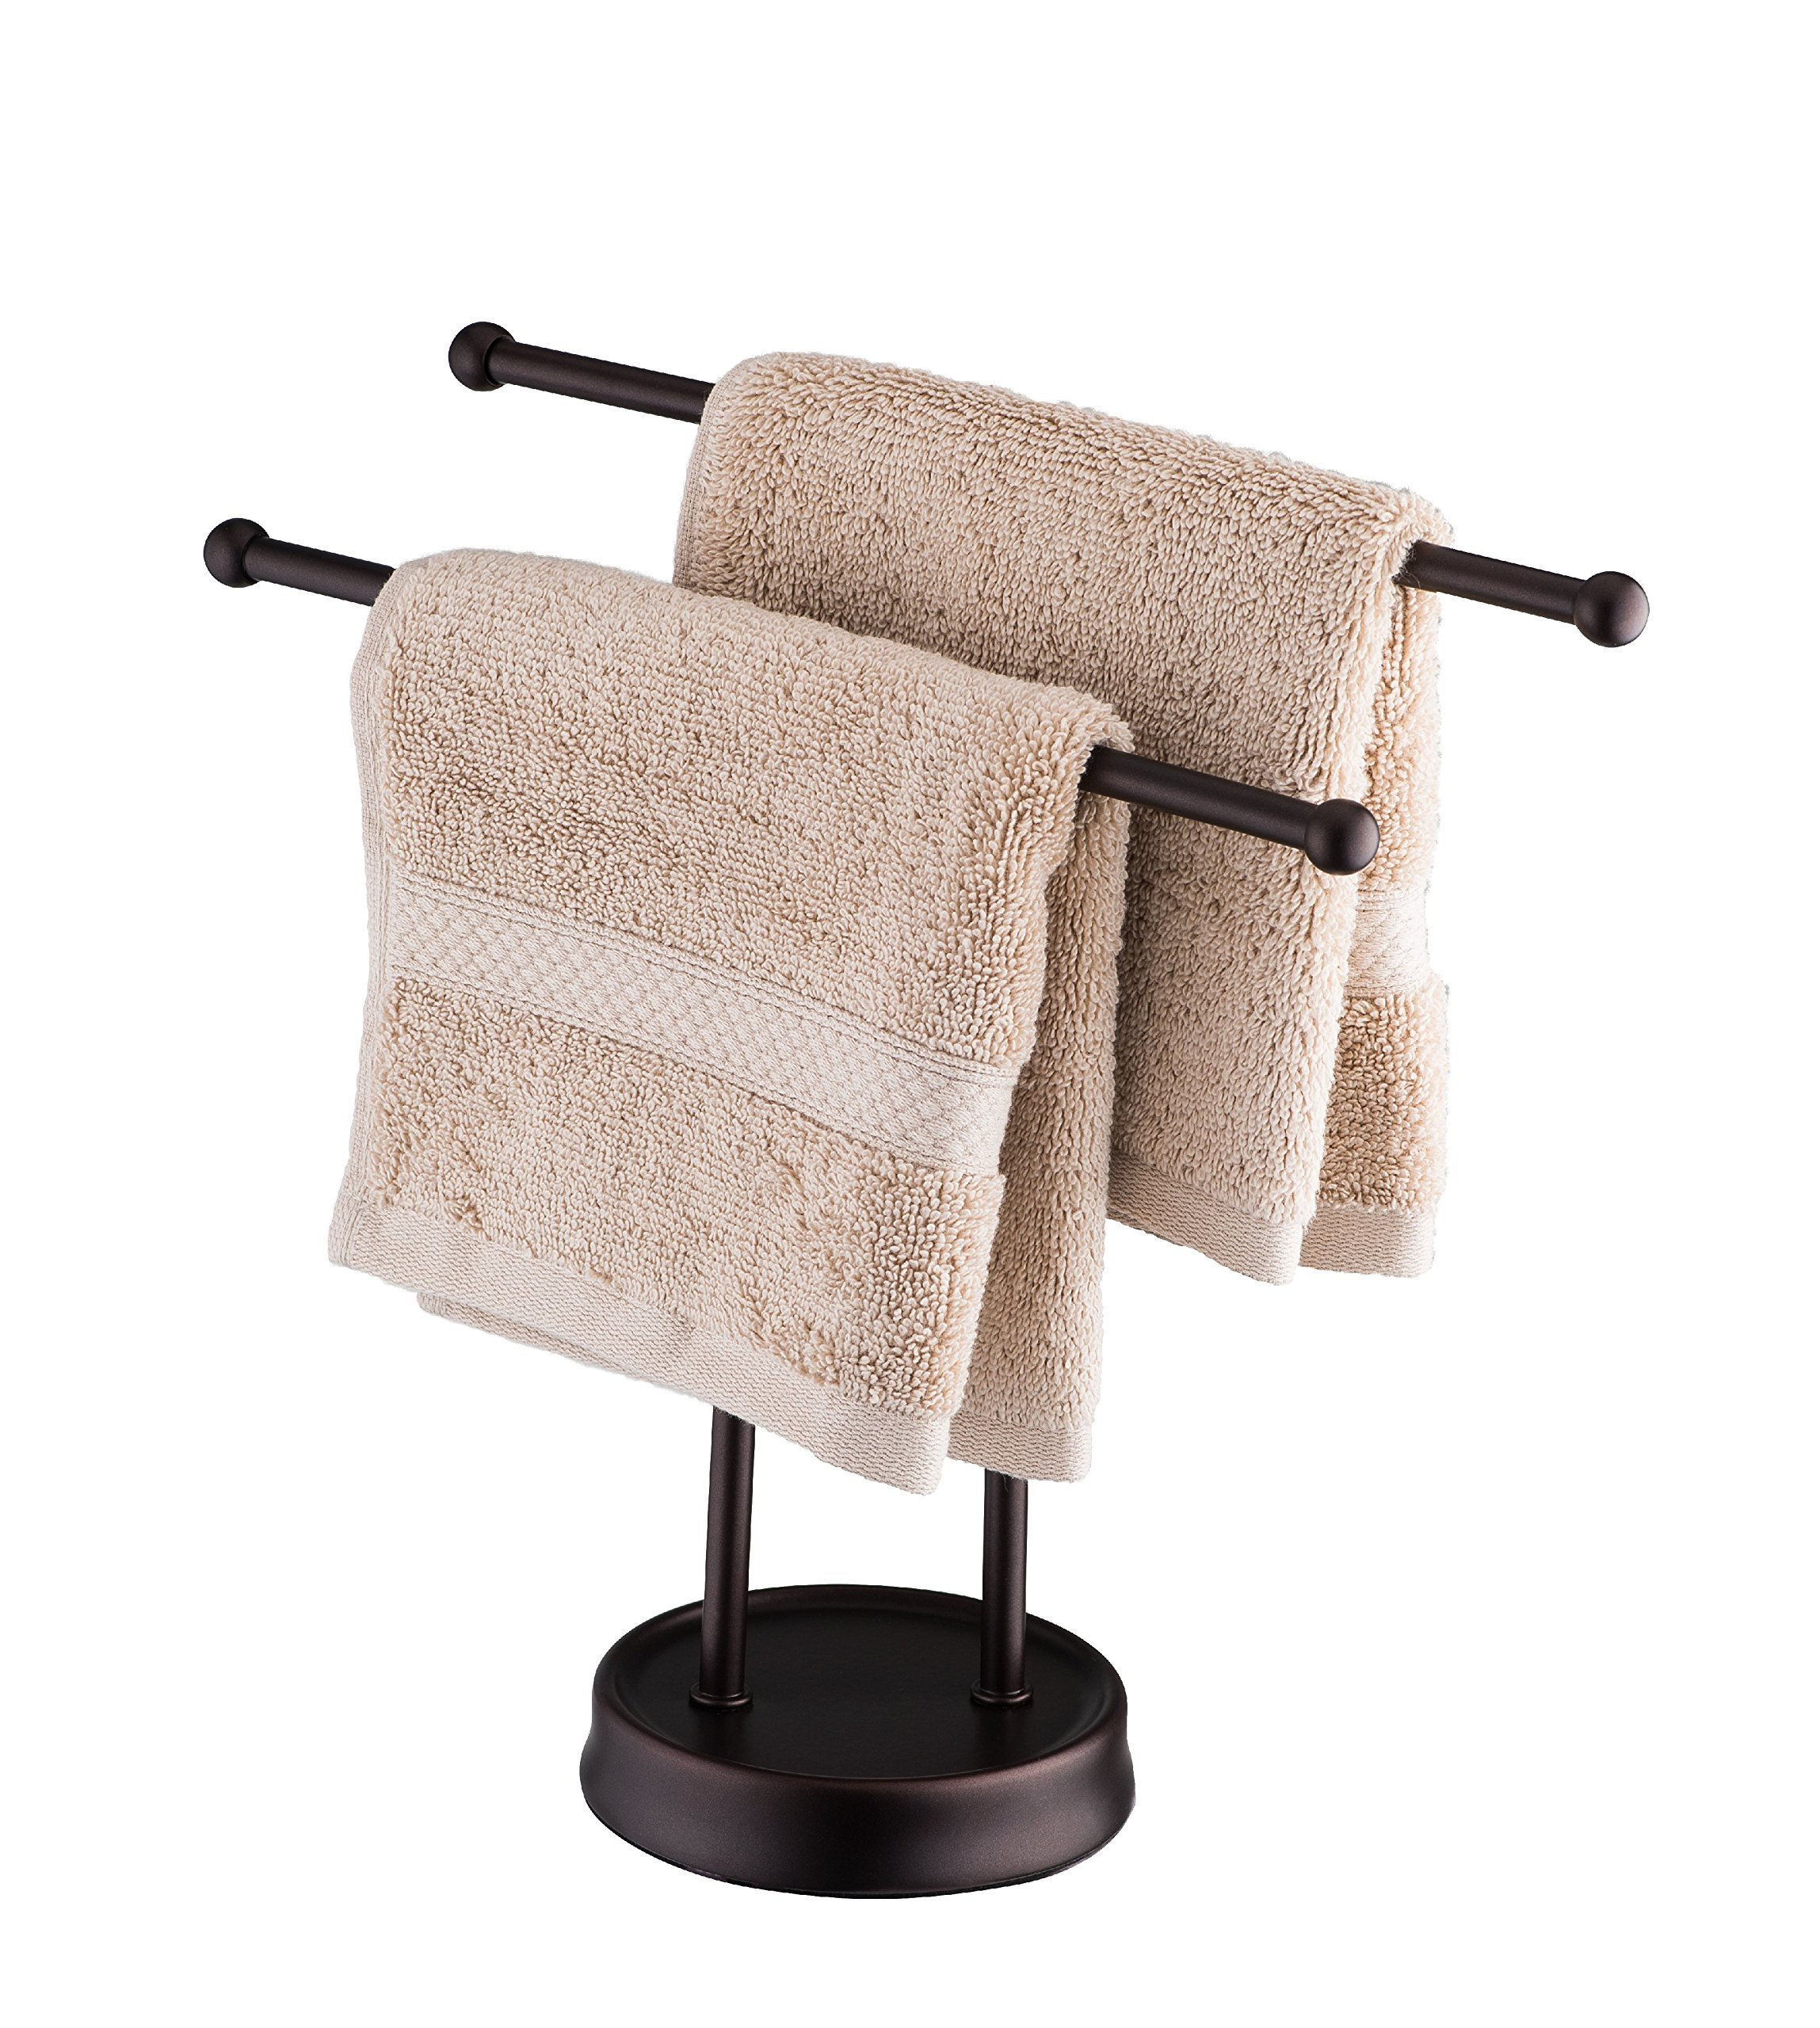 AMG and Enchante Accessories, Free Standing Fingertip Hand Towel Bar Holder Tree Rack, TT100005 ORB, Oil Rubbed Bronze